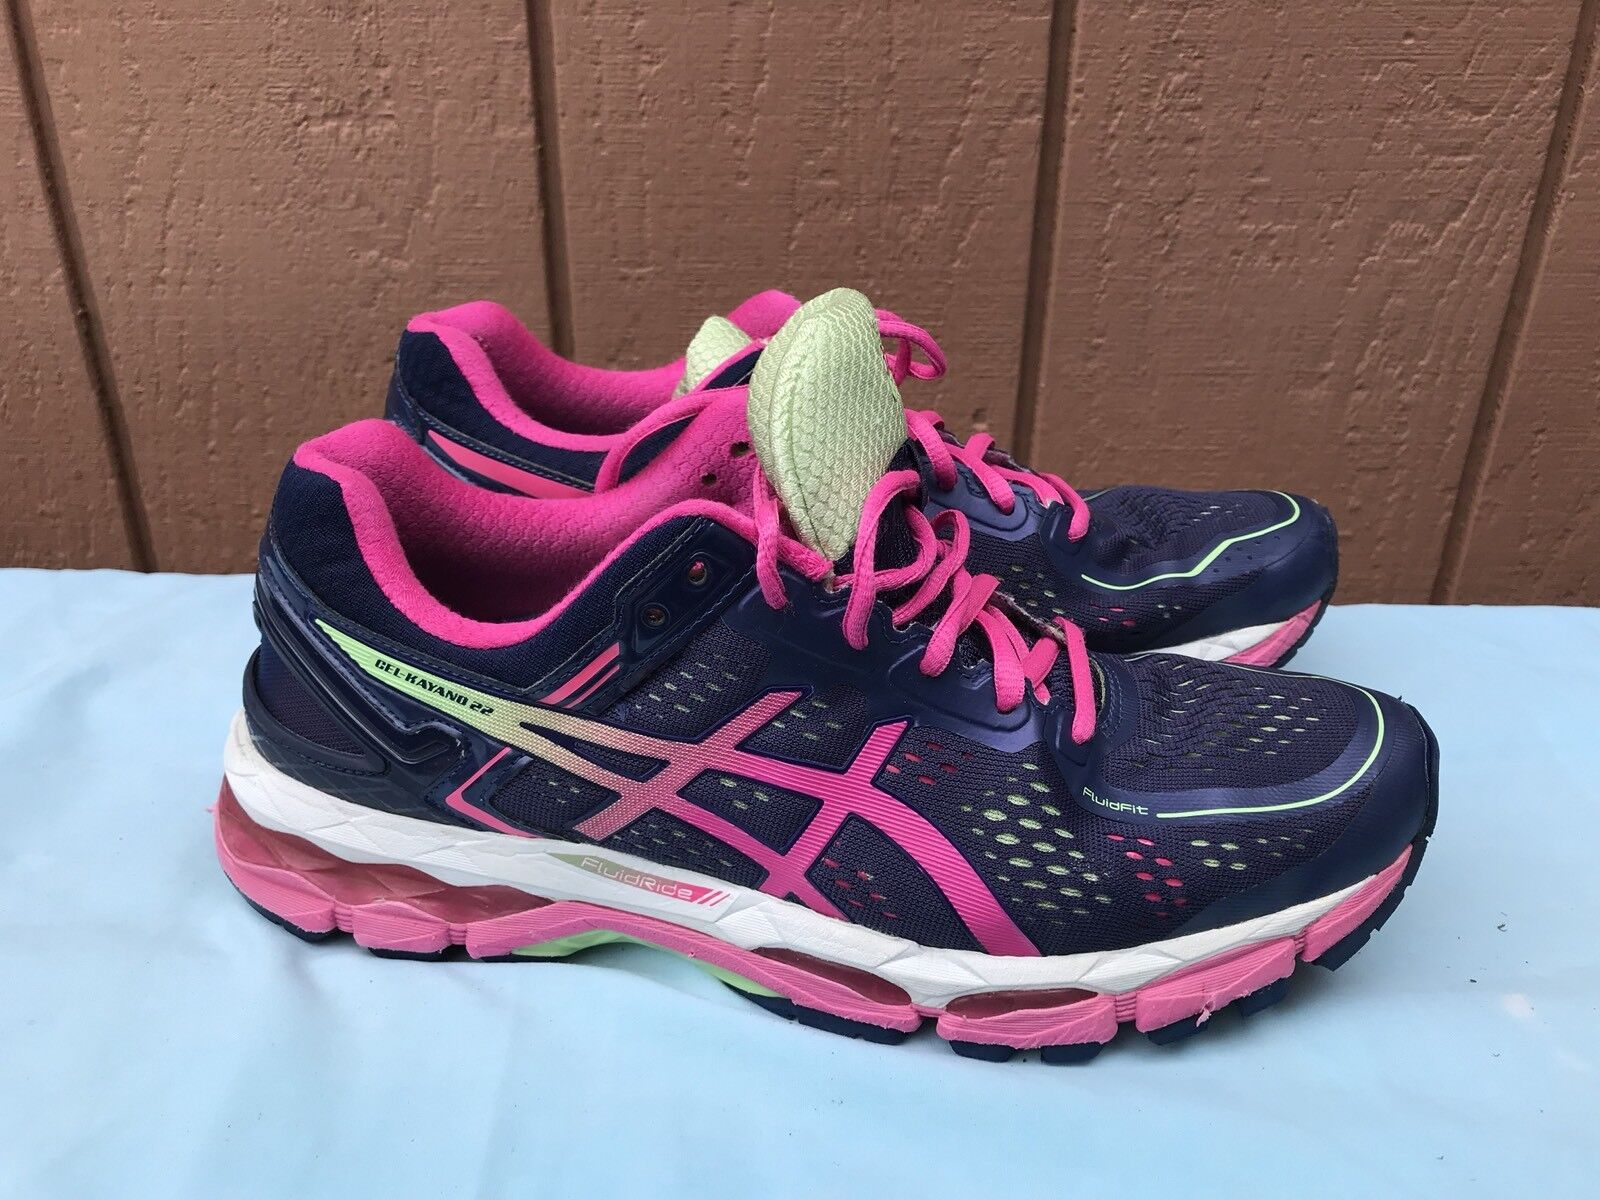 ASICS GEL-Kayano 22 Women's Navy/Pink Running Shoes US 10.5 D WIDE T598N A5